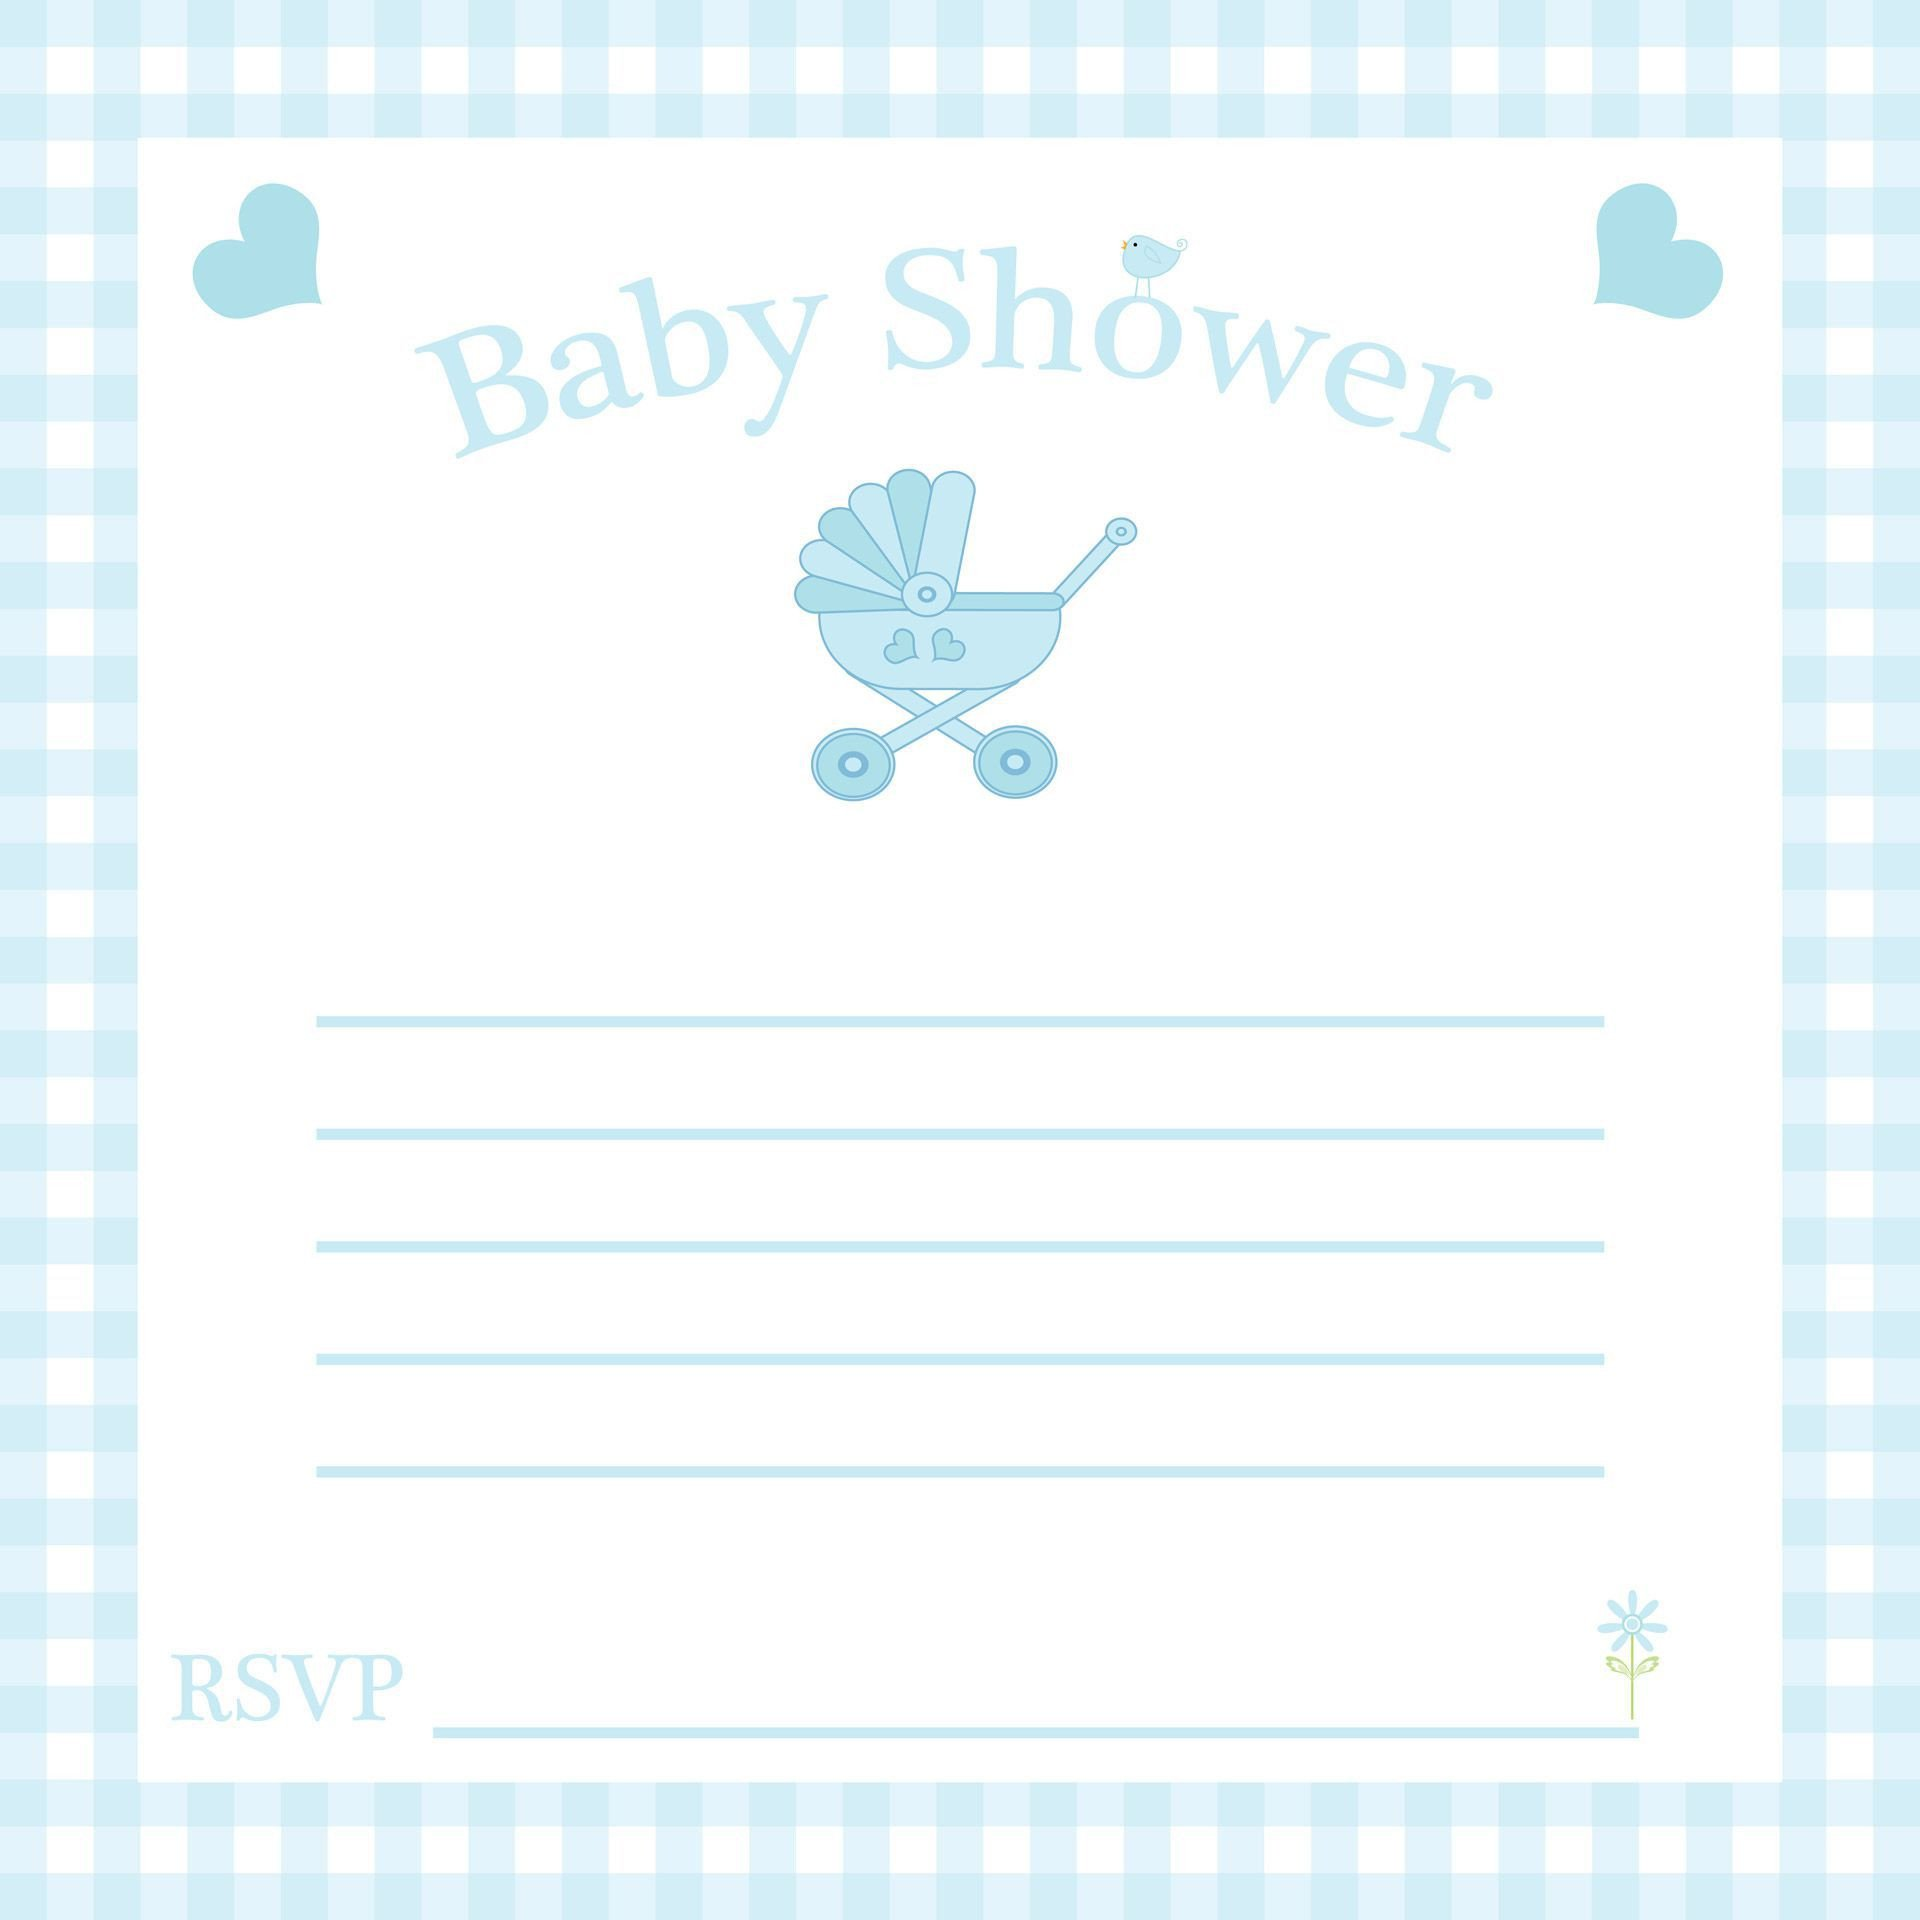 Baby Shower Invitation Free Template Graduation Party Free Baby Invitation Template Card